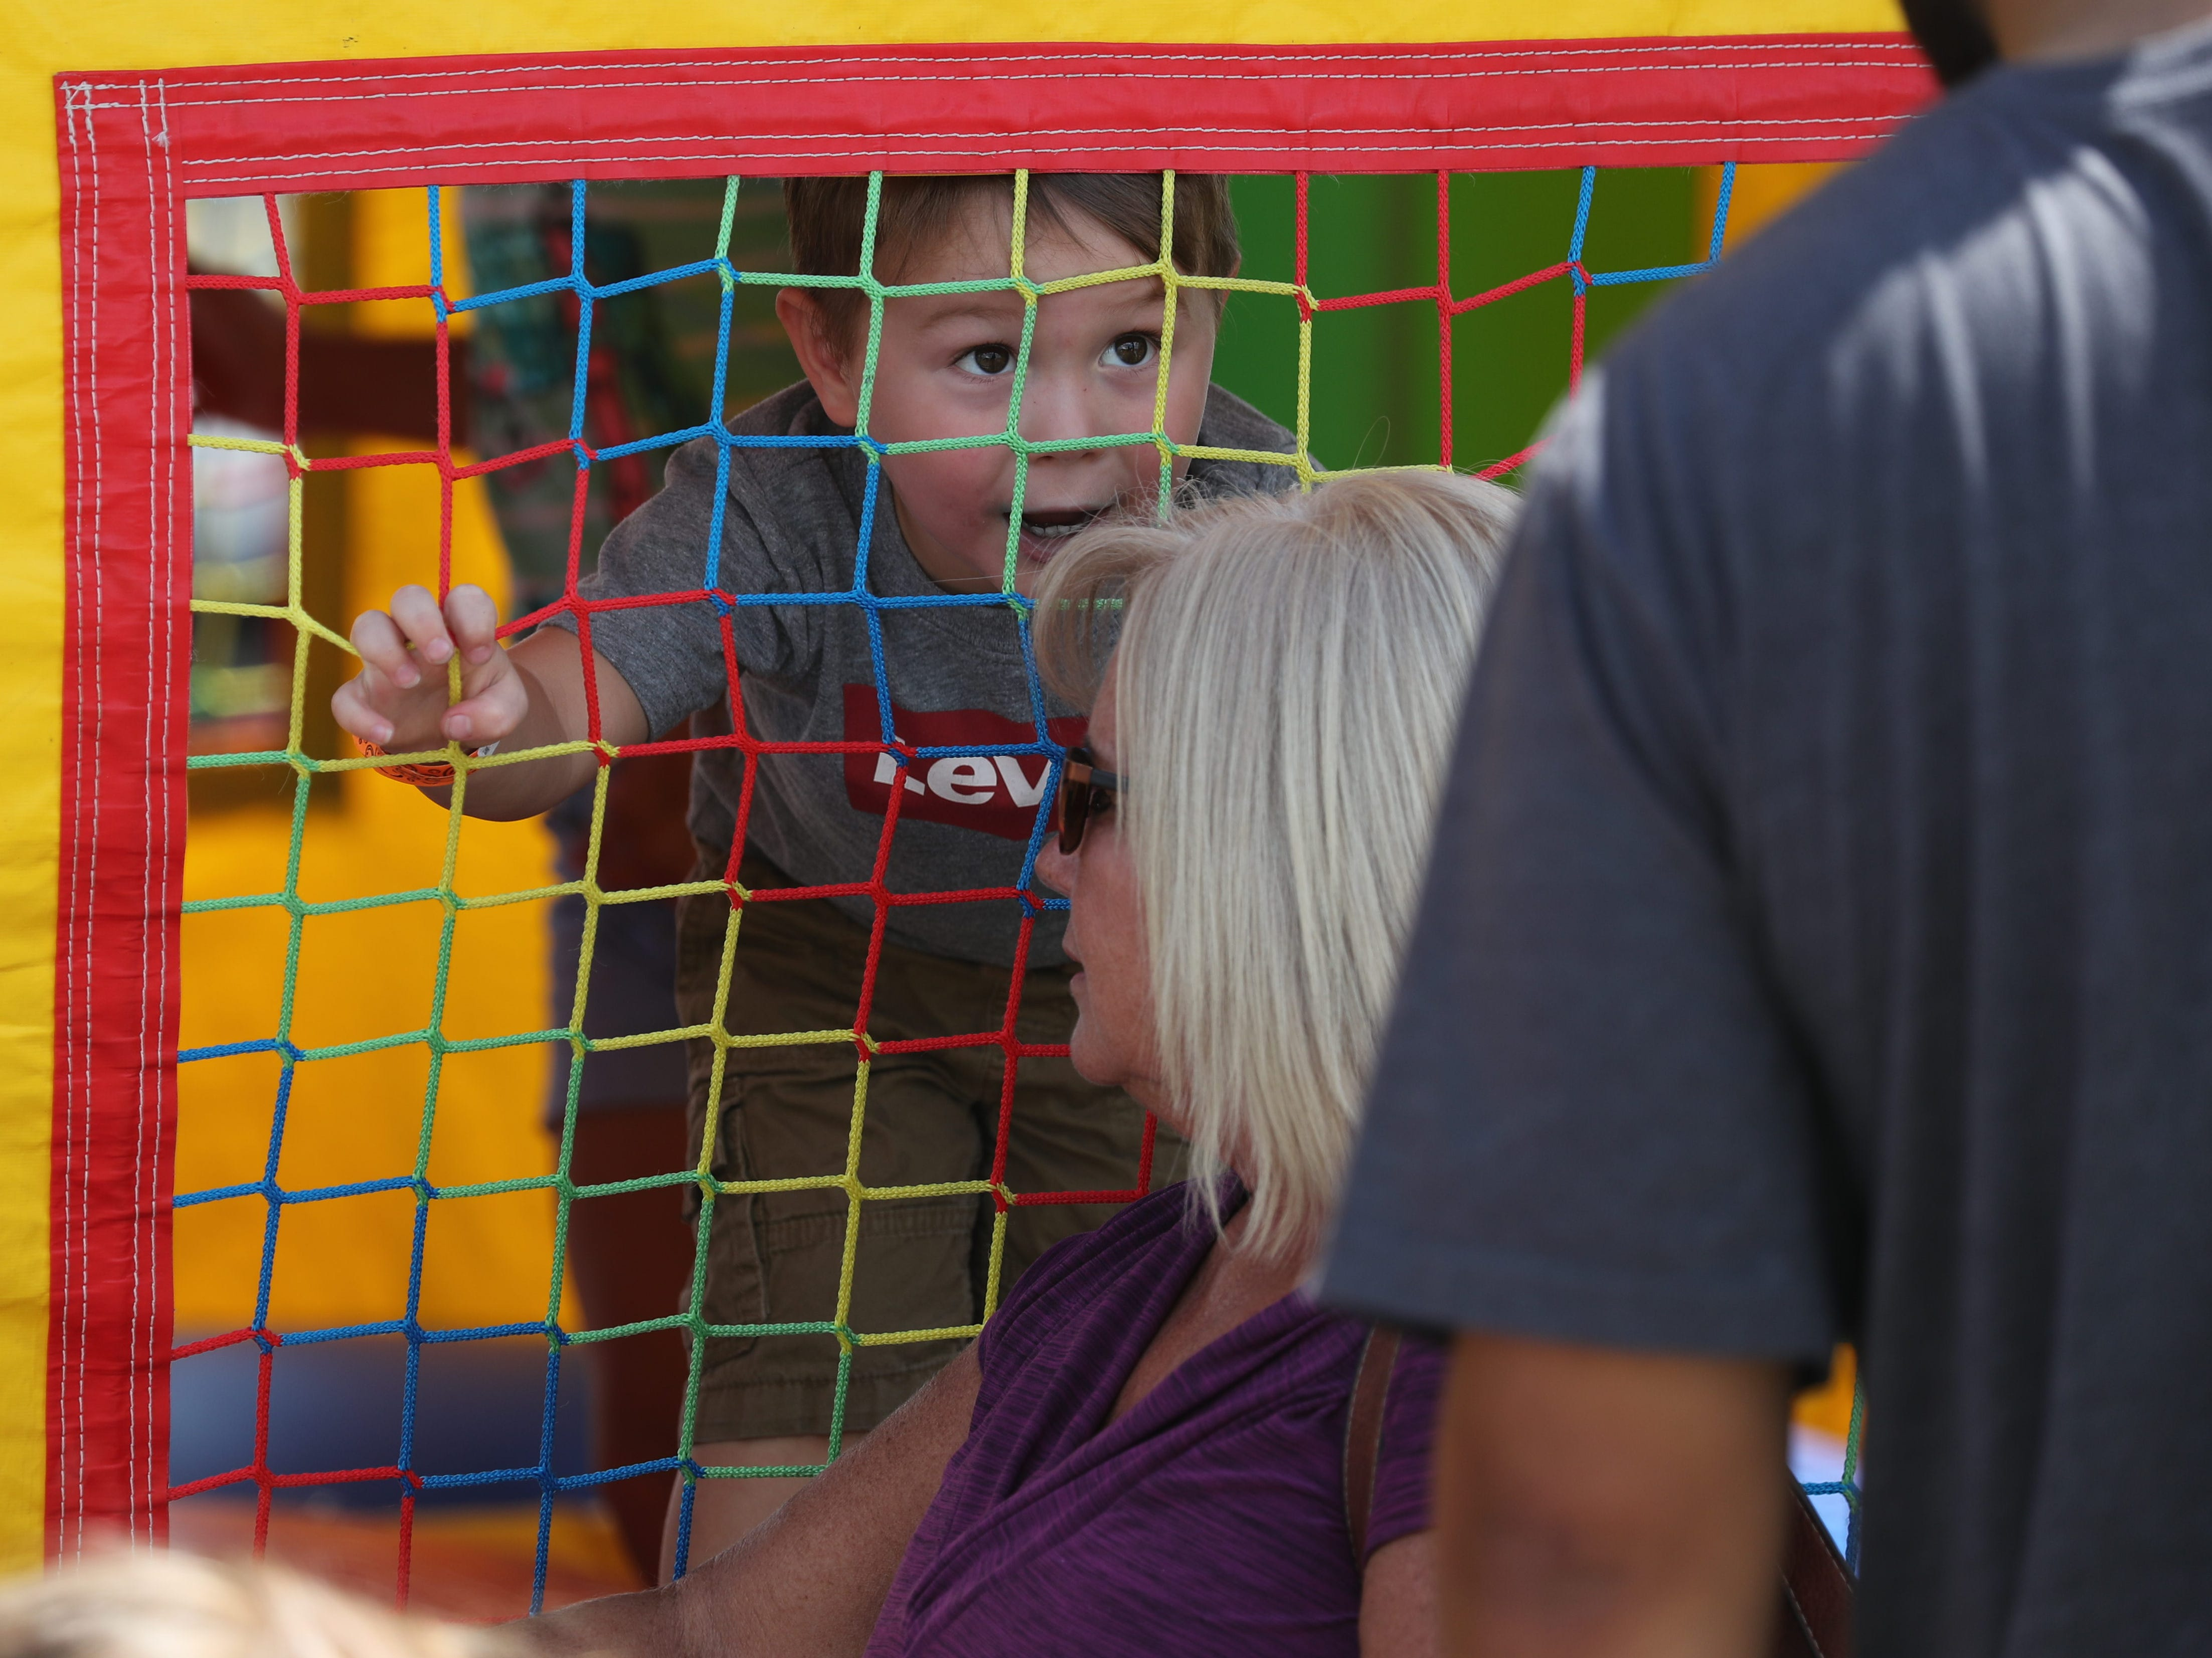 Conner Zamorano, 3, looks out from the bounce house at the Lights for Layla fundraiser Saturday in Cape Coral.